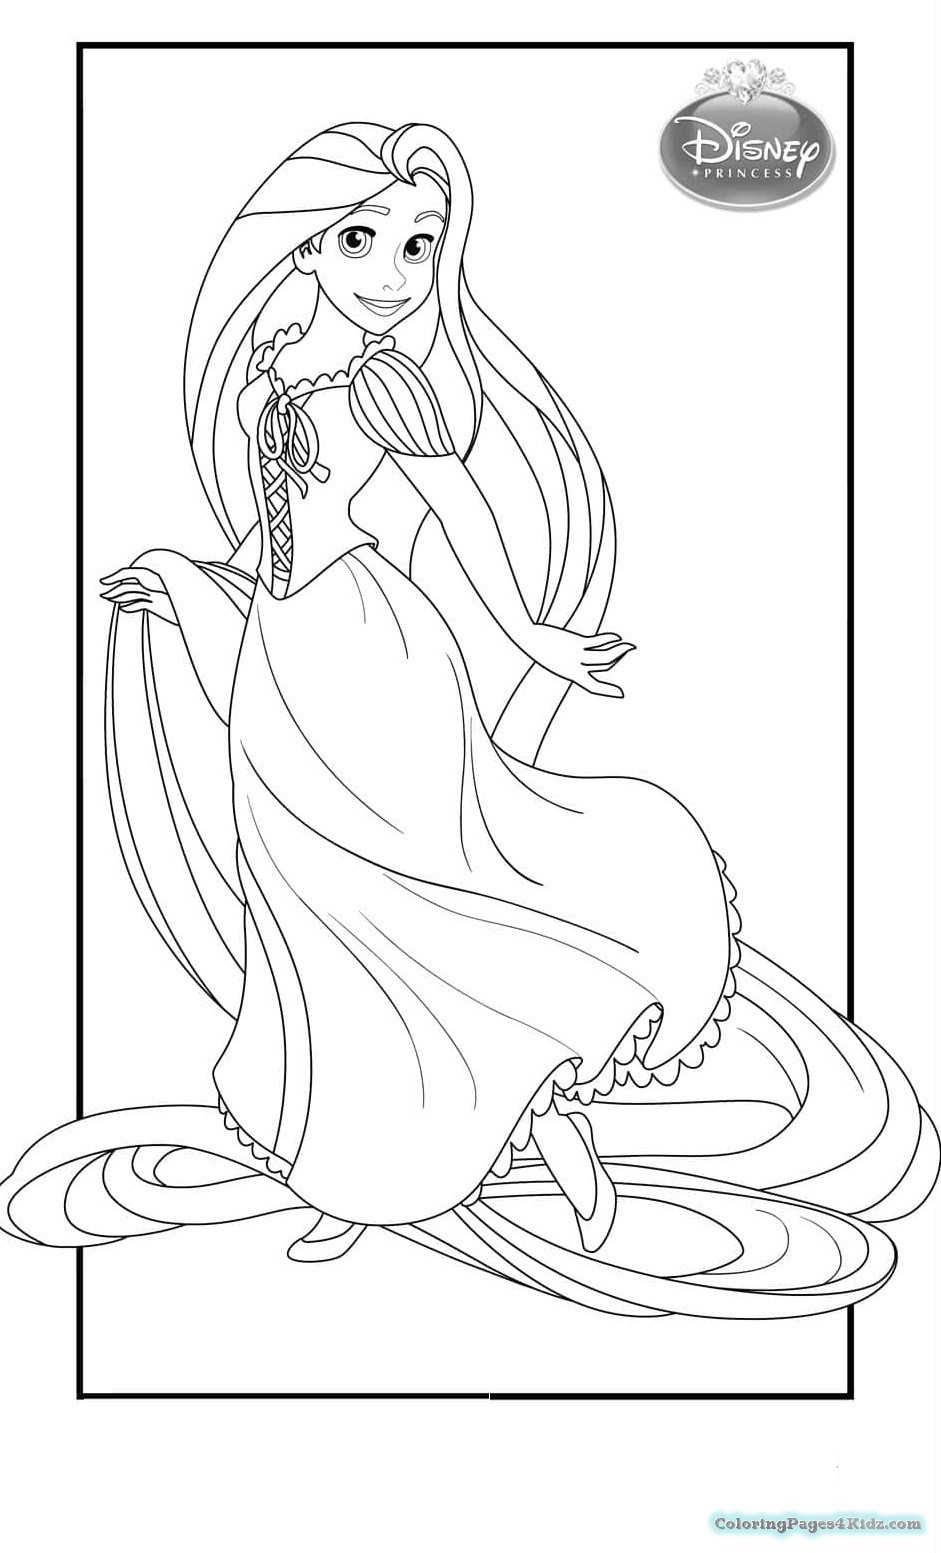 coloring pages of rapunzel printable coloring pages rapunzel princess coloring of rapunzel pages coloring